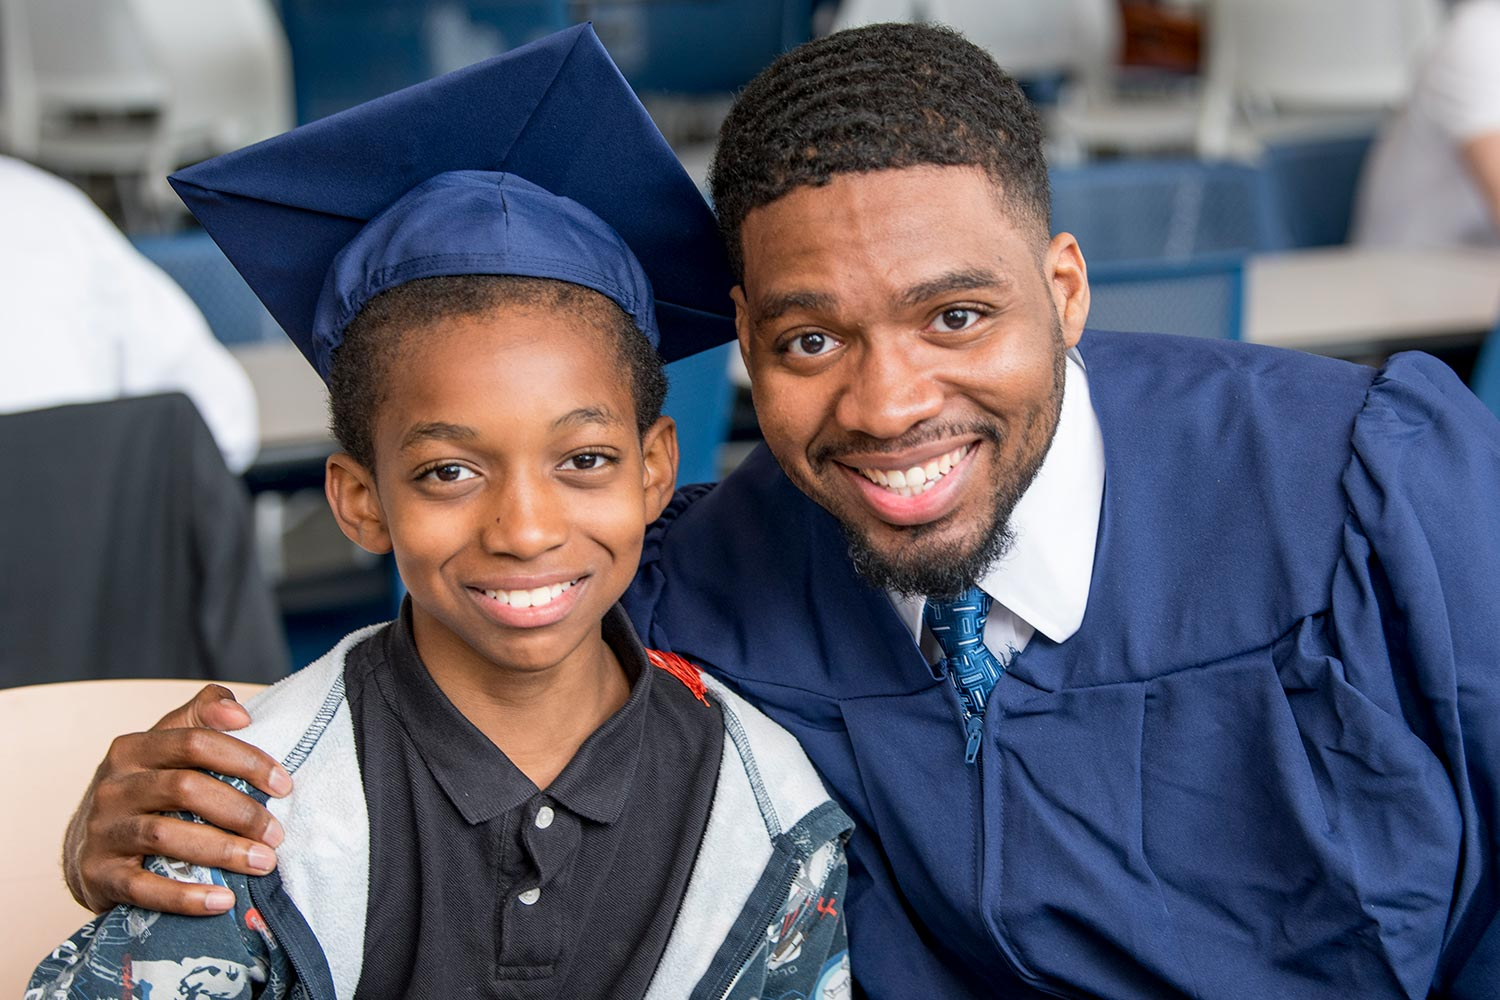 John Scipion '17 Computer science and engineering from Norwalk, CT with his little brother, Emmanuel after the School of Engineering commencement (graduation) ceremony on May 6, 2017.